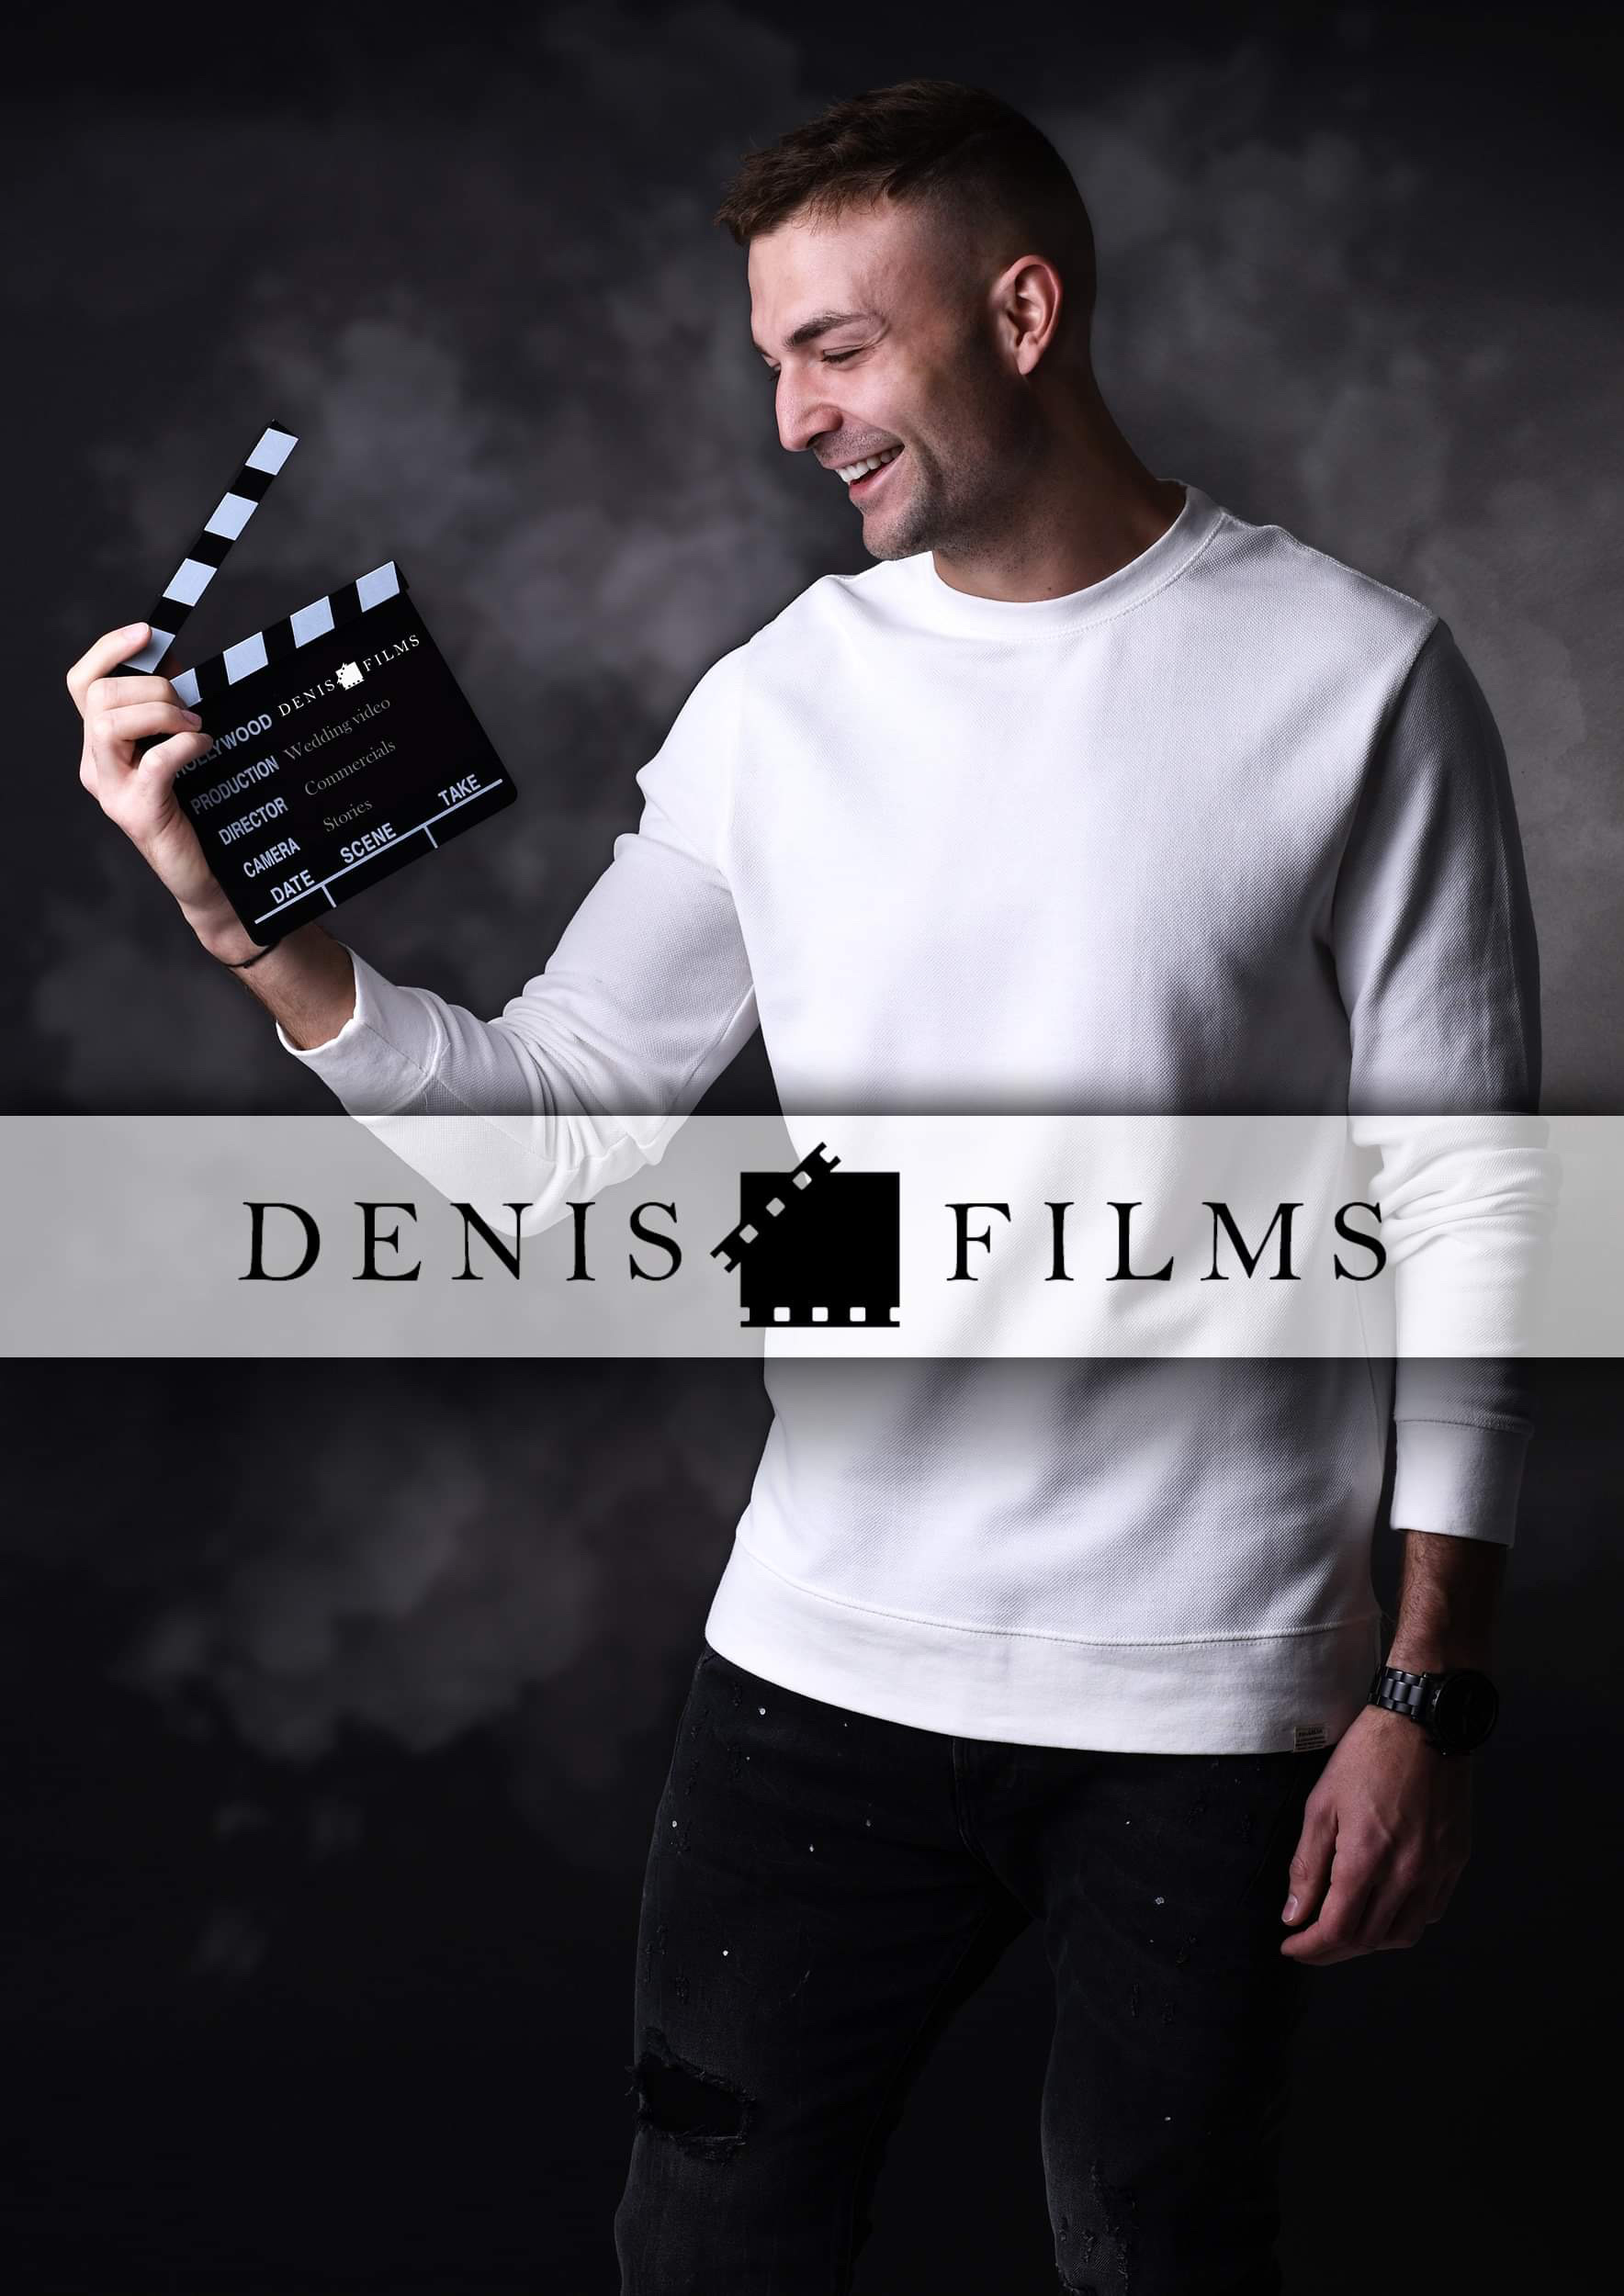 DenisFilms